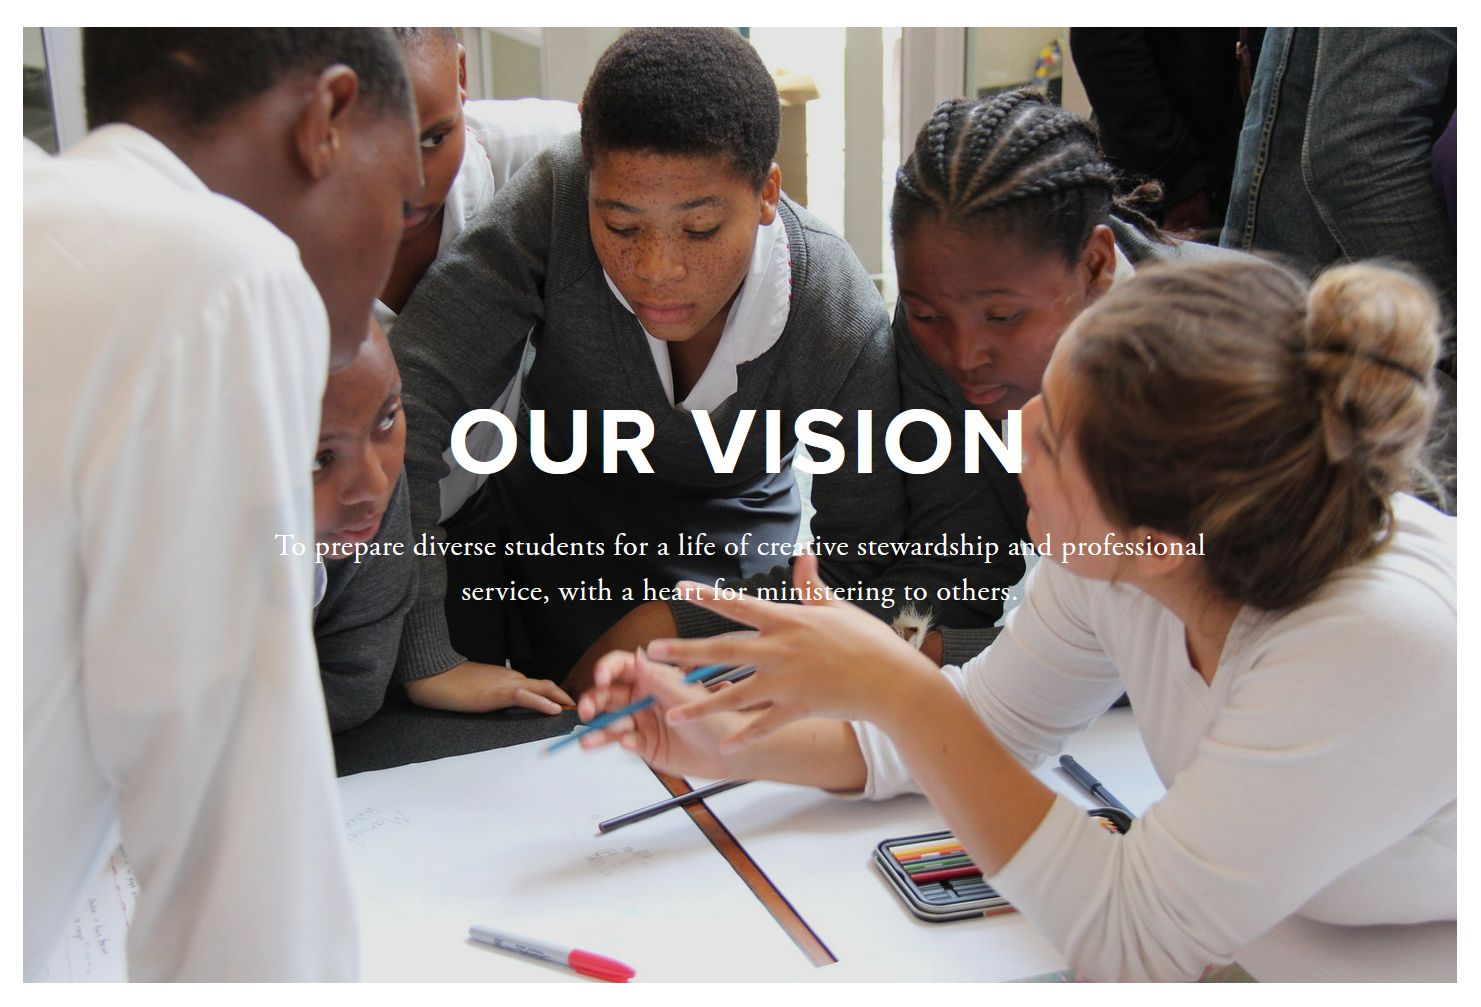 Vision Statement from the school<br>as it appears on their official website,<br> https://andrews.edu/said/home/ as of 07.30.2020